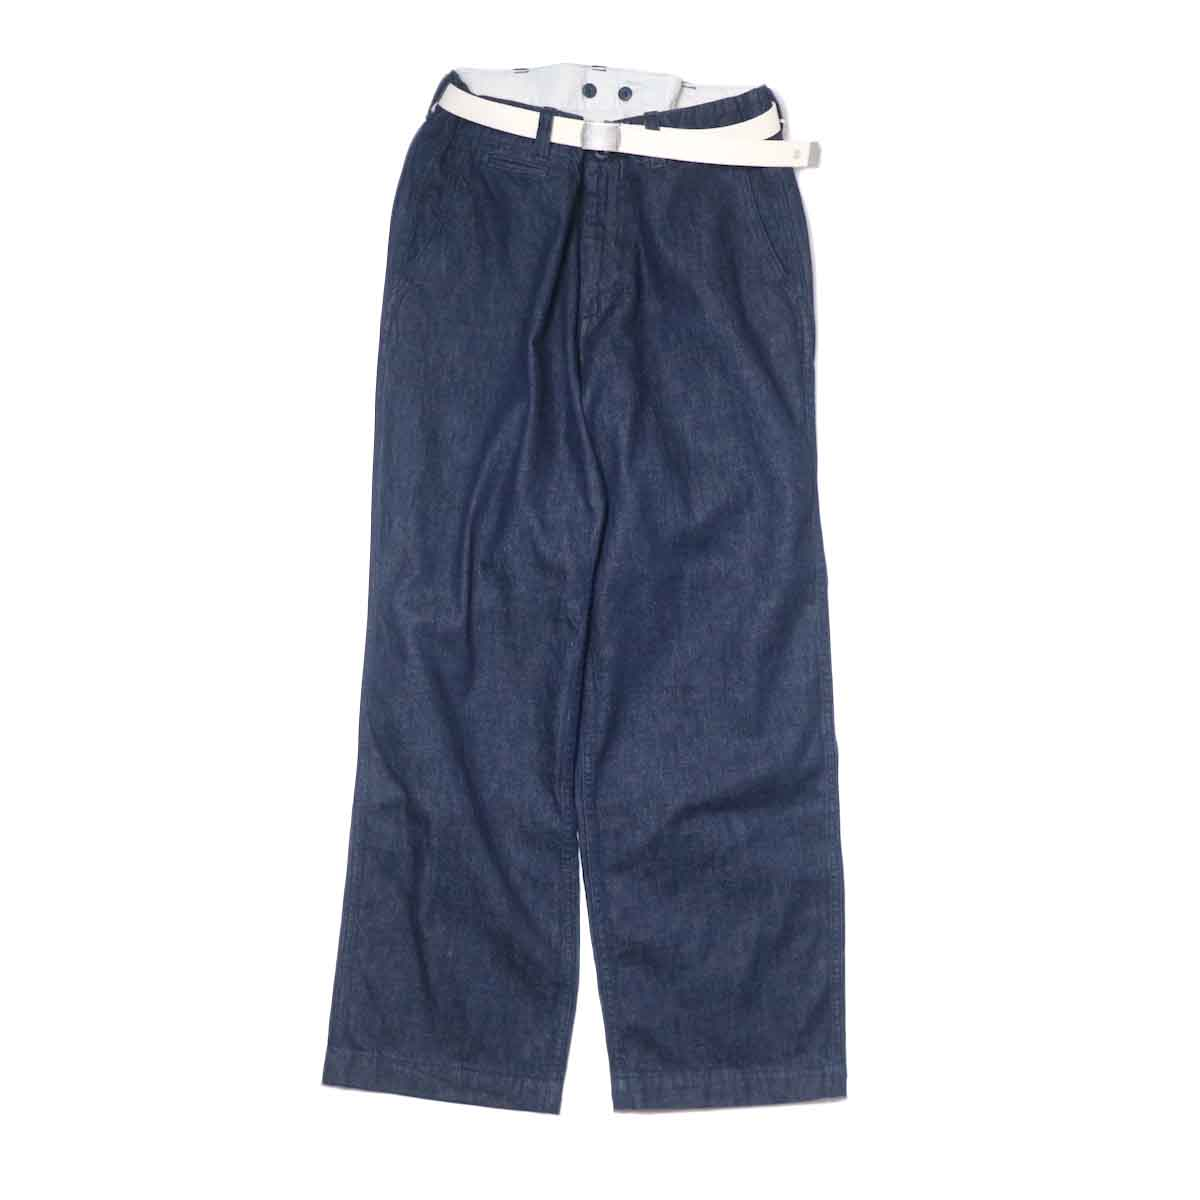 MASTER&Co. / ONE WASHED DENIM LONG PANTS 正面